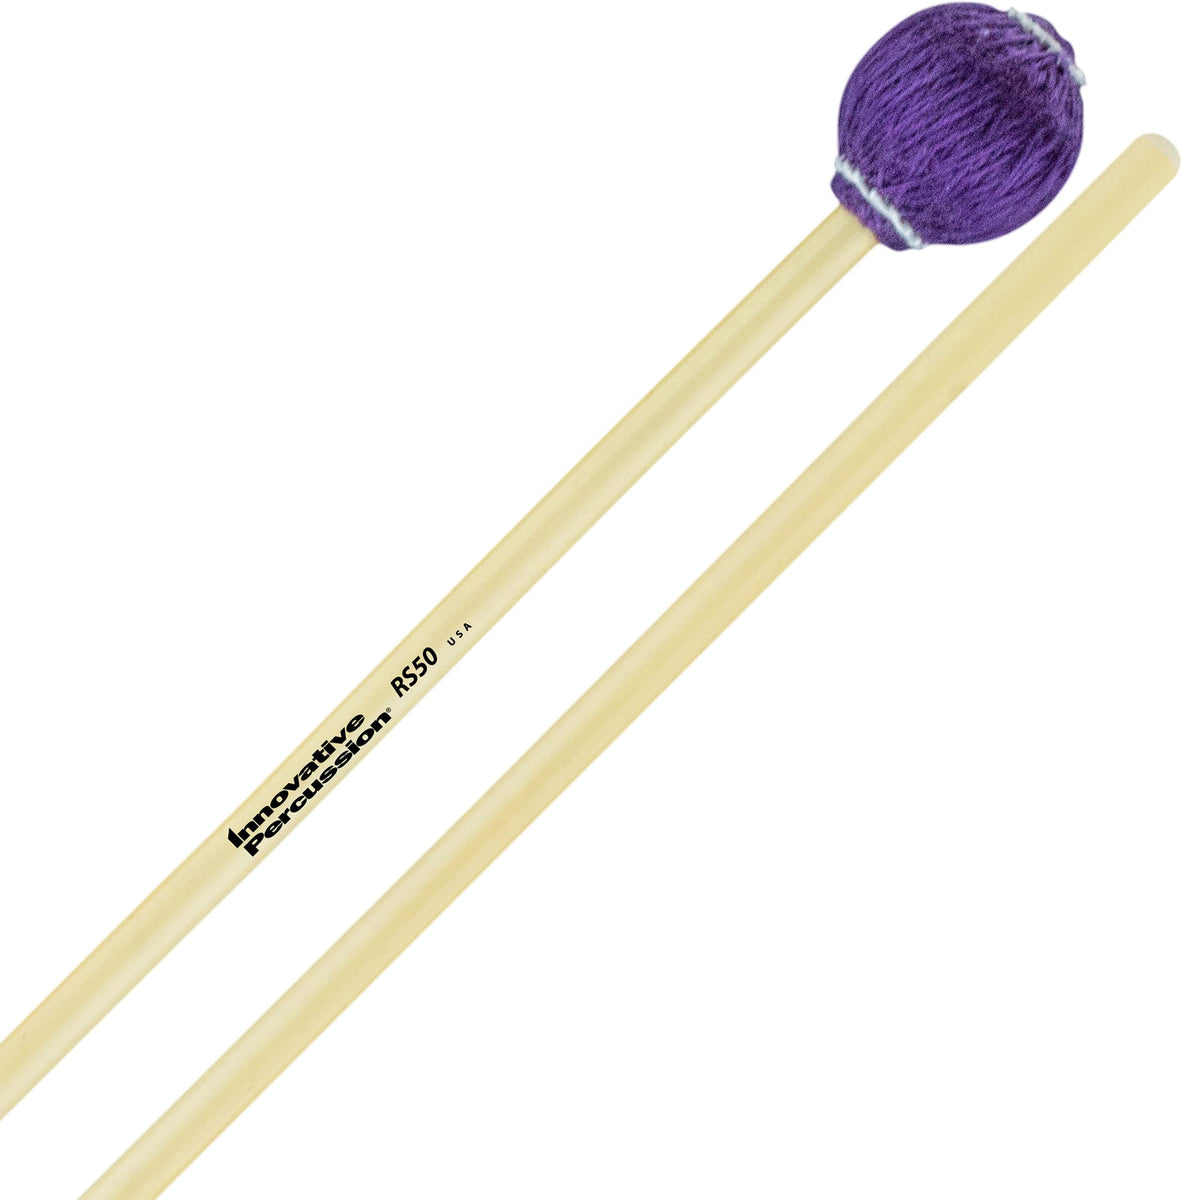 Innovative Percussion - Rattan Series Concert Vibraphone/Marimba Mallets-Percussion-Innovative Percussion-RS50 Very Hard-Music Elements